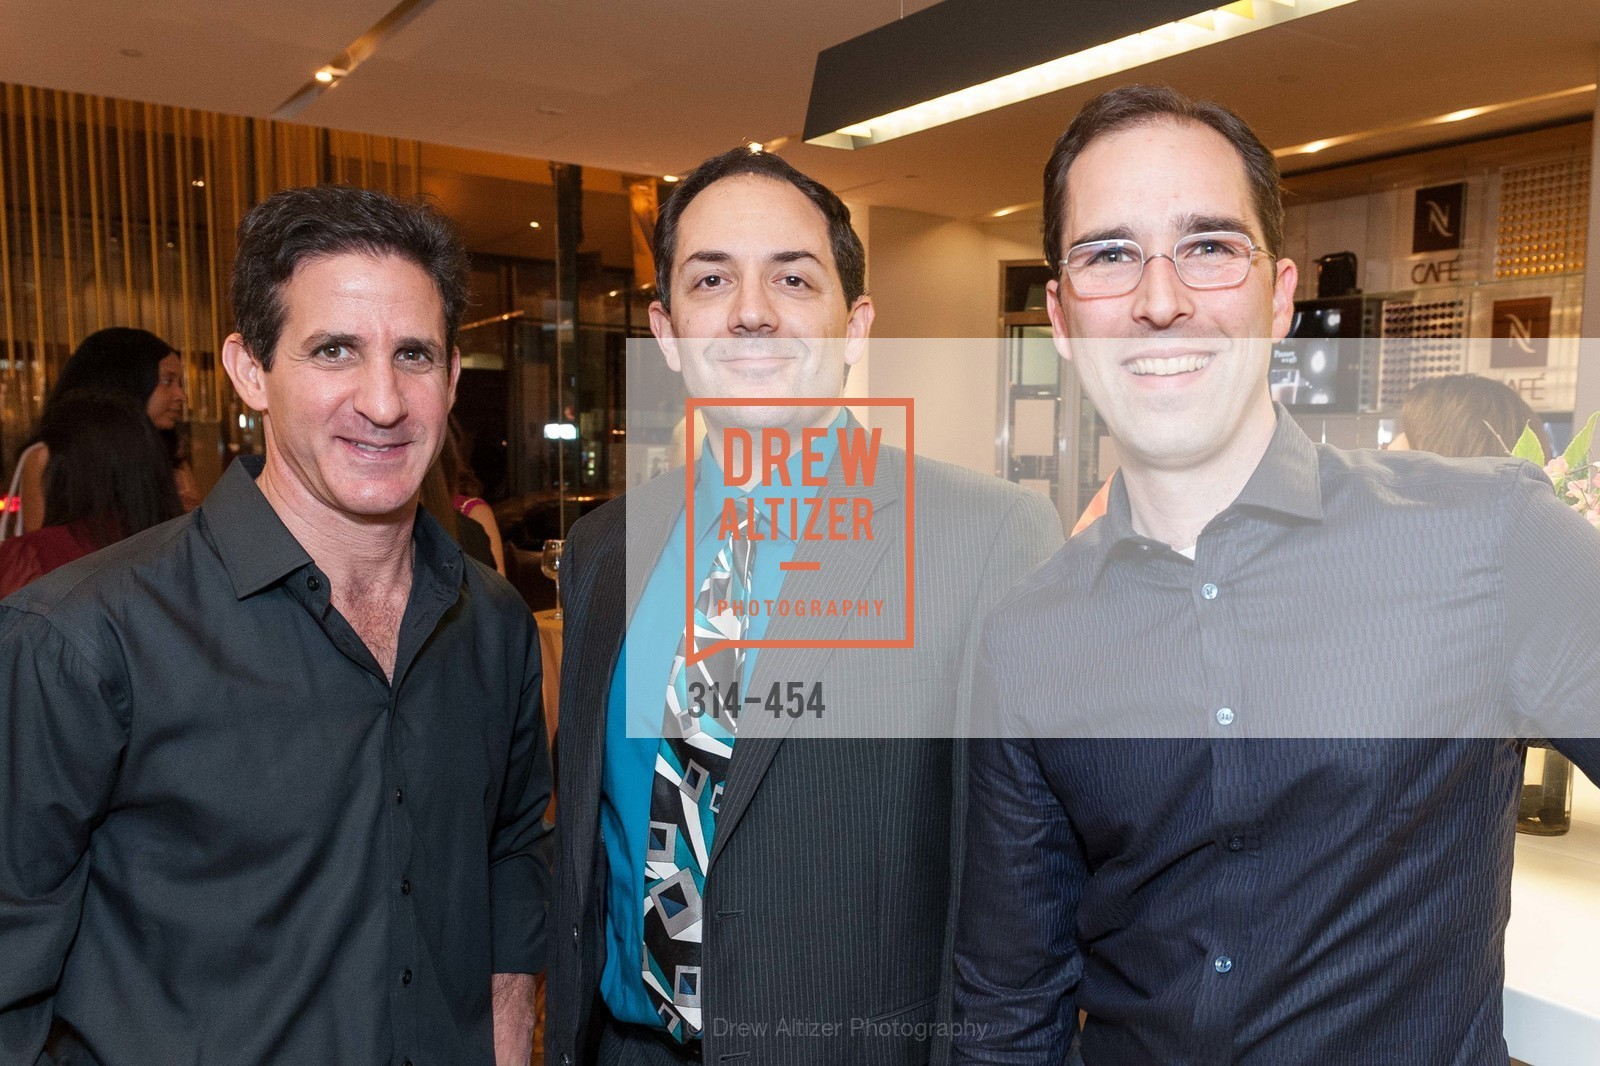 Adam Thaler, Tony Alfidi, PM Wagner, 2014 SAN FRANCISCO BALLET ENCORE! Kick-Off Party, US. Nespresso Boutique Bar, 90 Grant Avenue, January 7th, 2014,Drew Altizer, Drew Altizer Photography, full-service event agency, private events, San Francisco photographer, photographer California